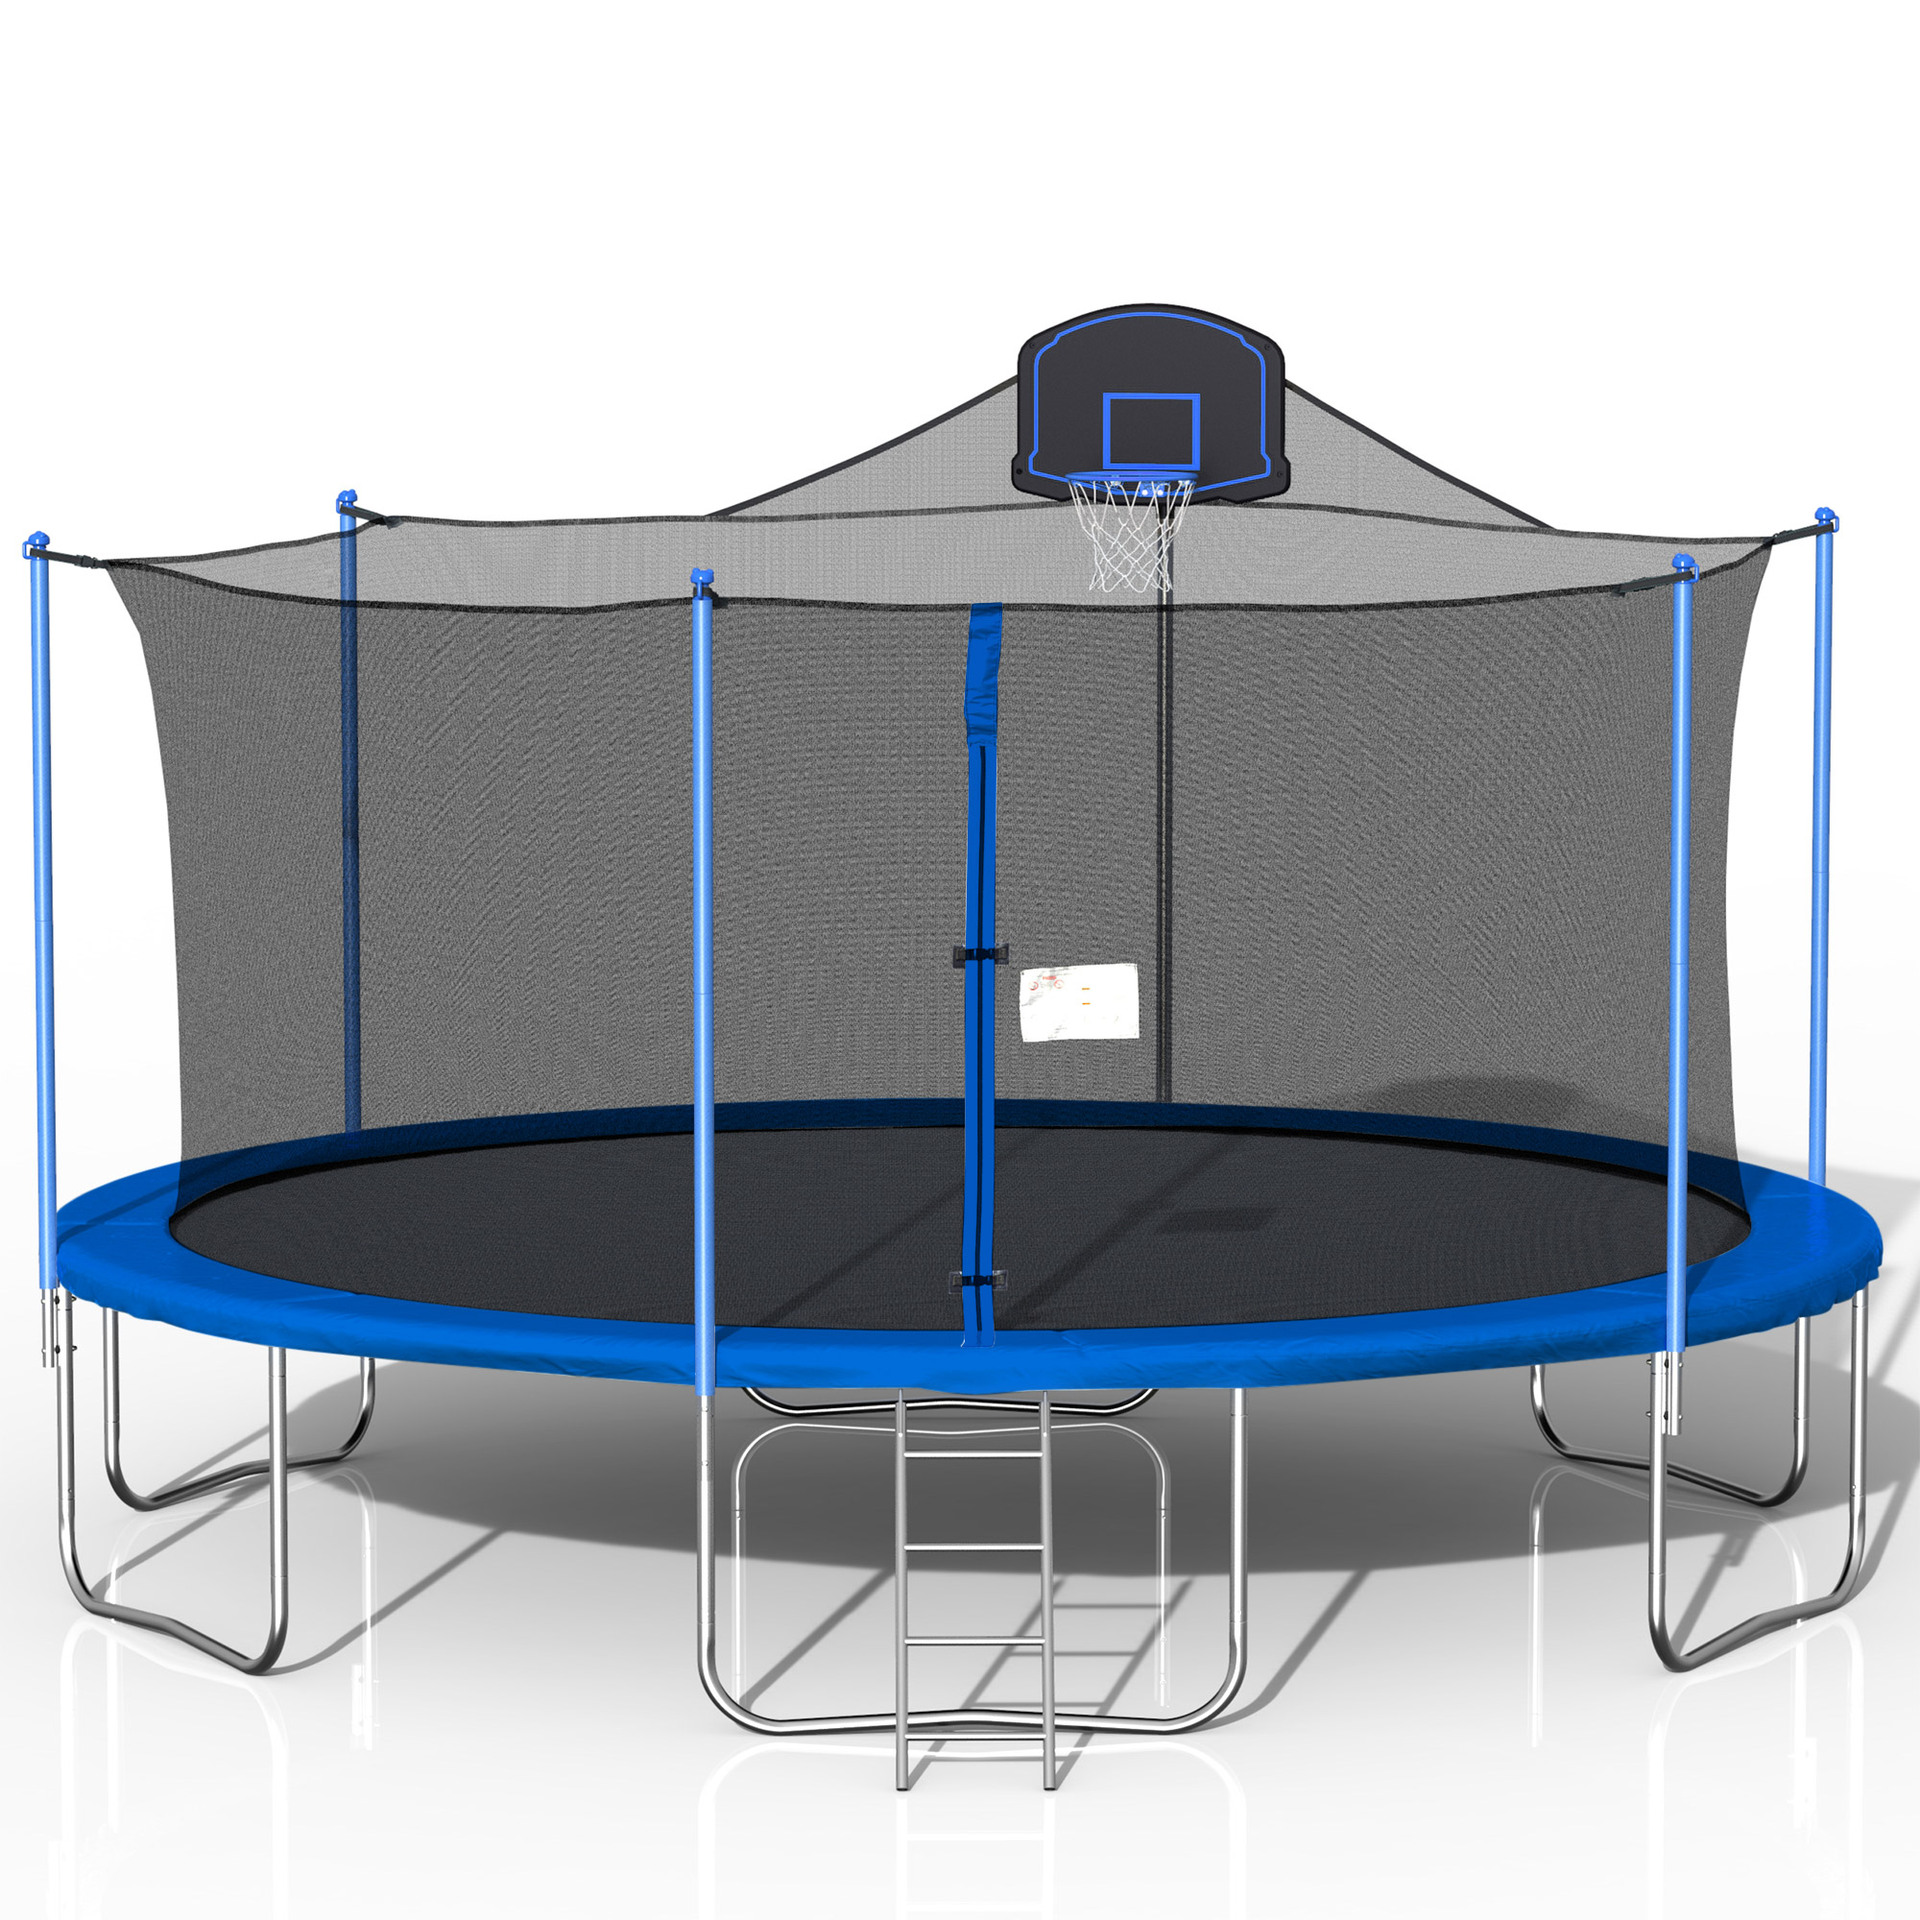 Inclake Trampoline with Ladder Enclosure Net and Basketball Hoop